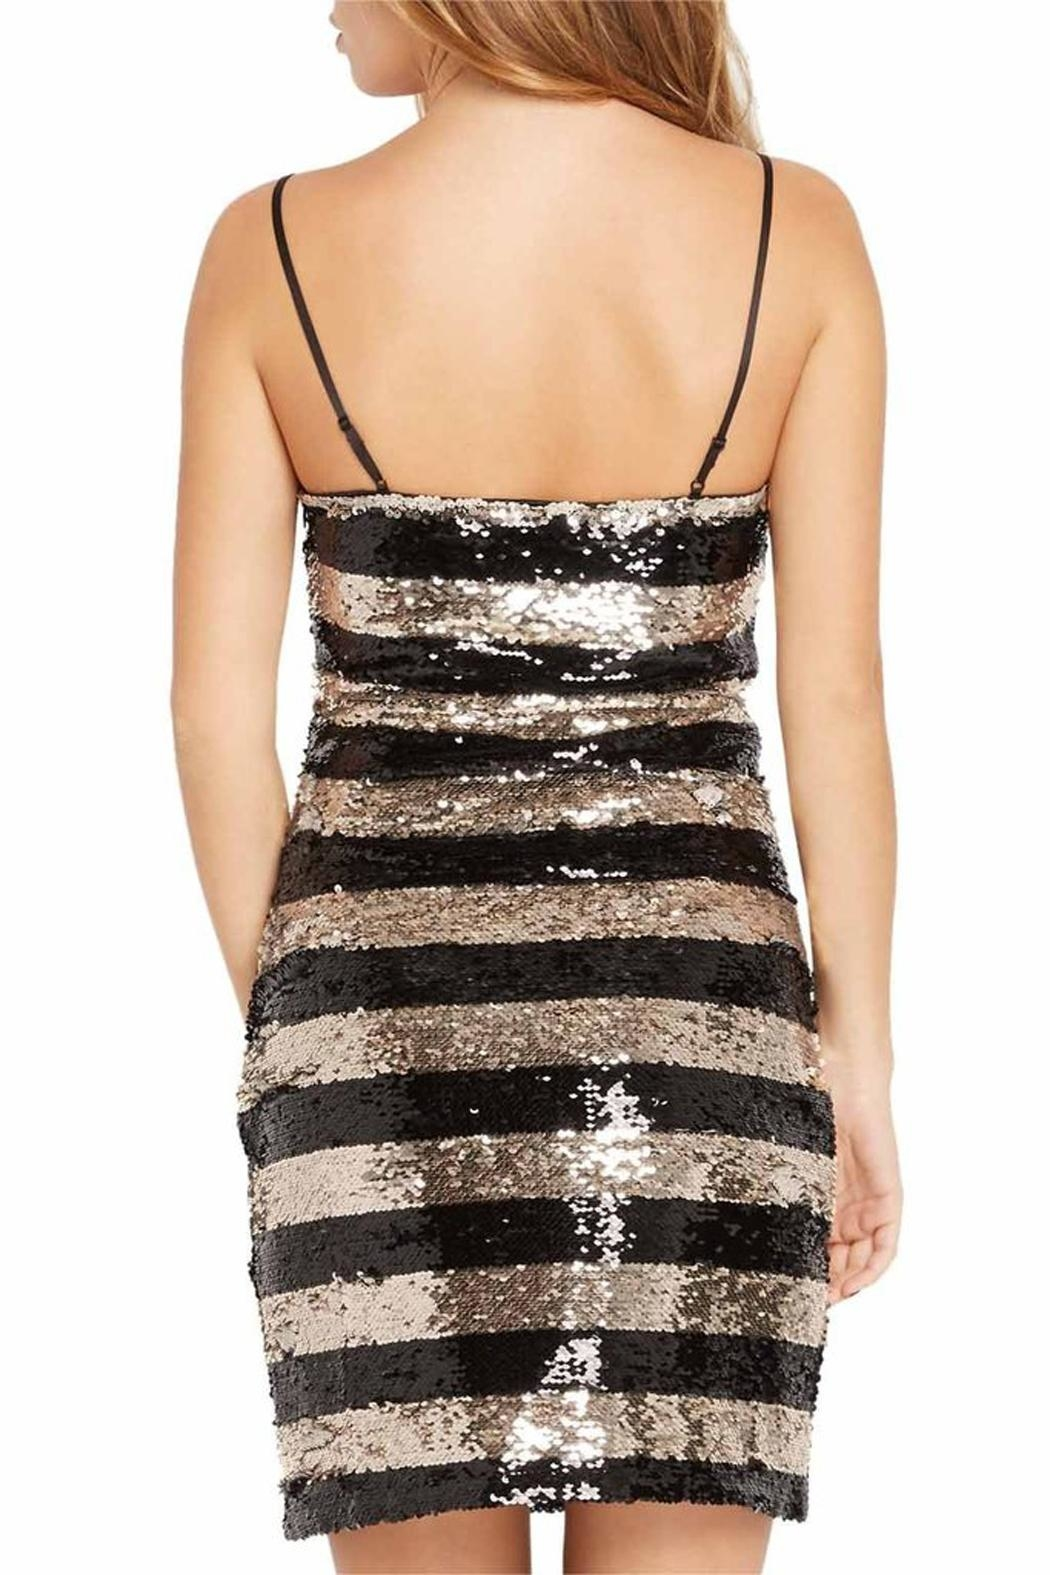 Mai Tai Metallic Sequin Dress - Back Cropped Image